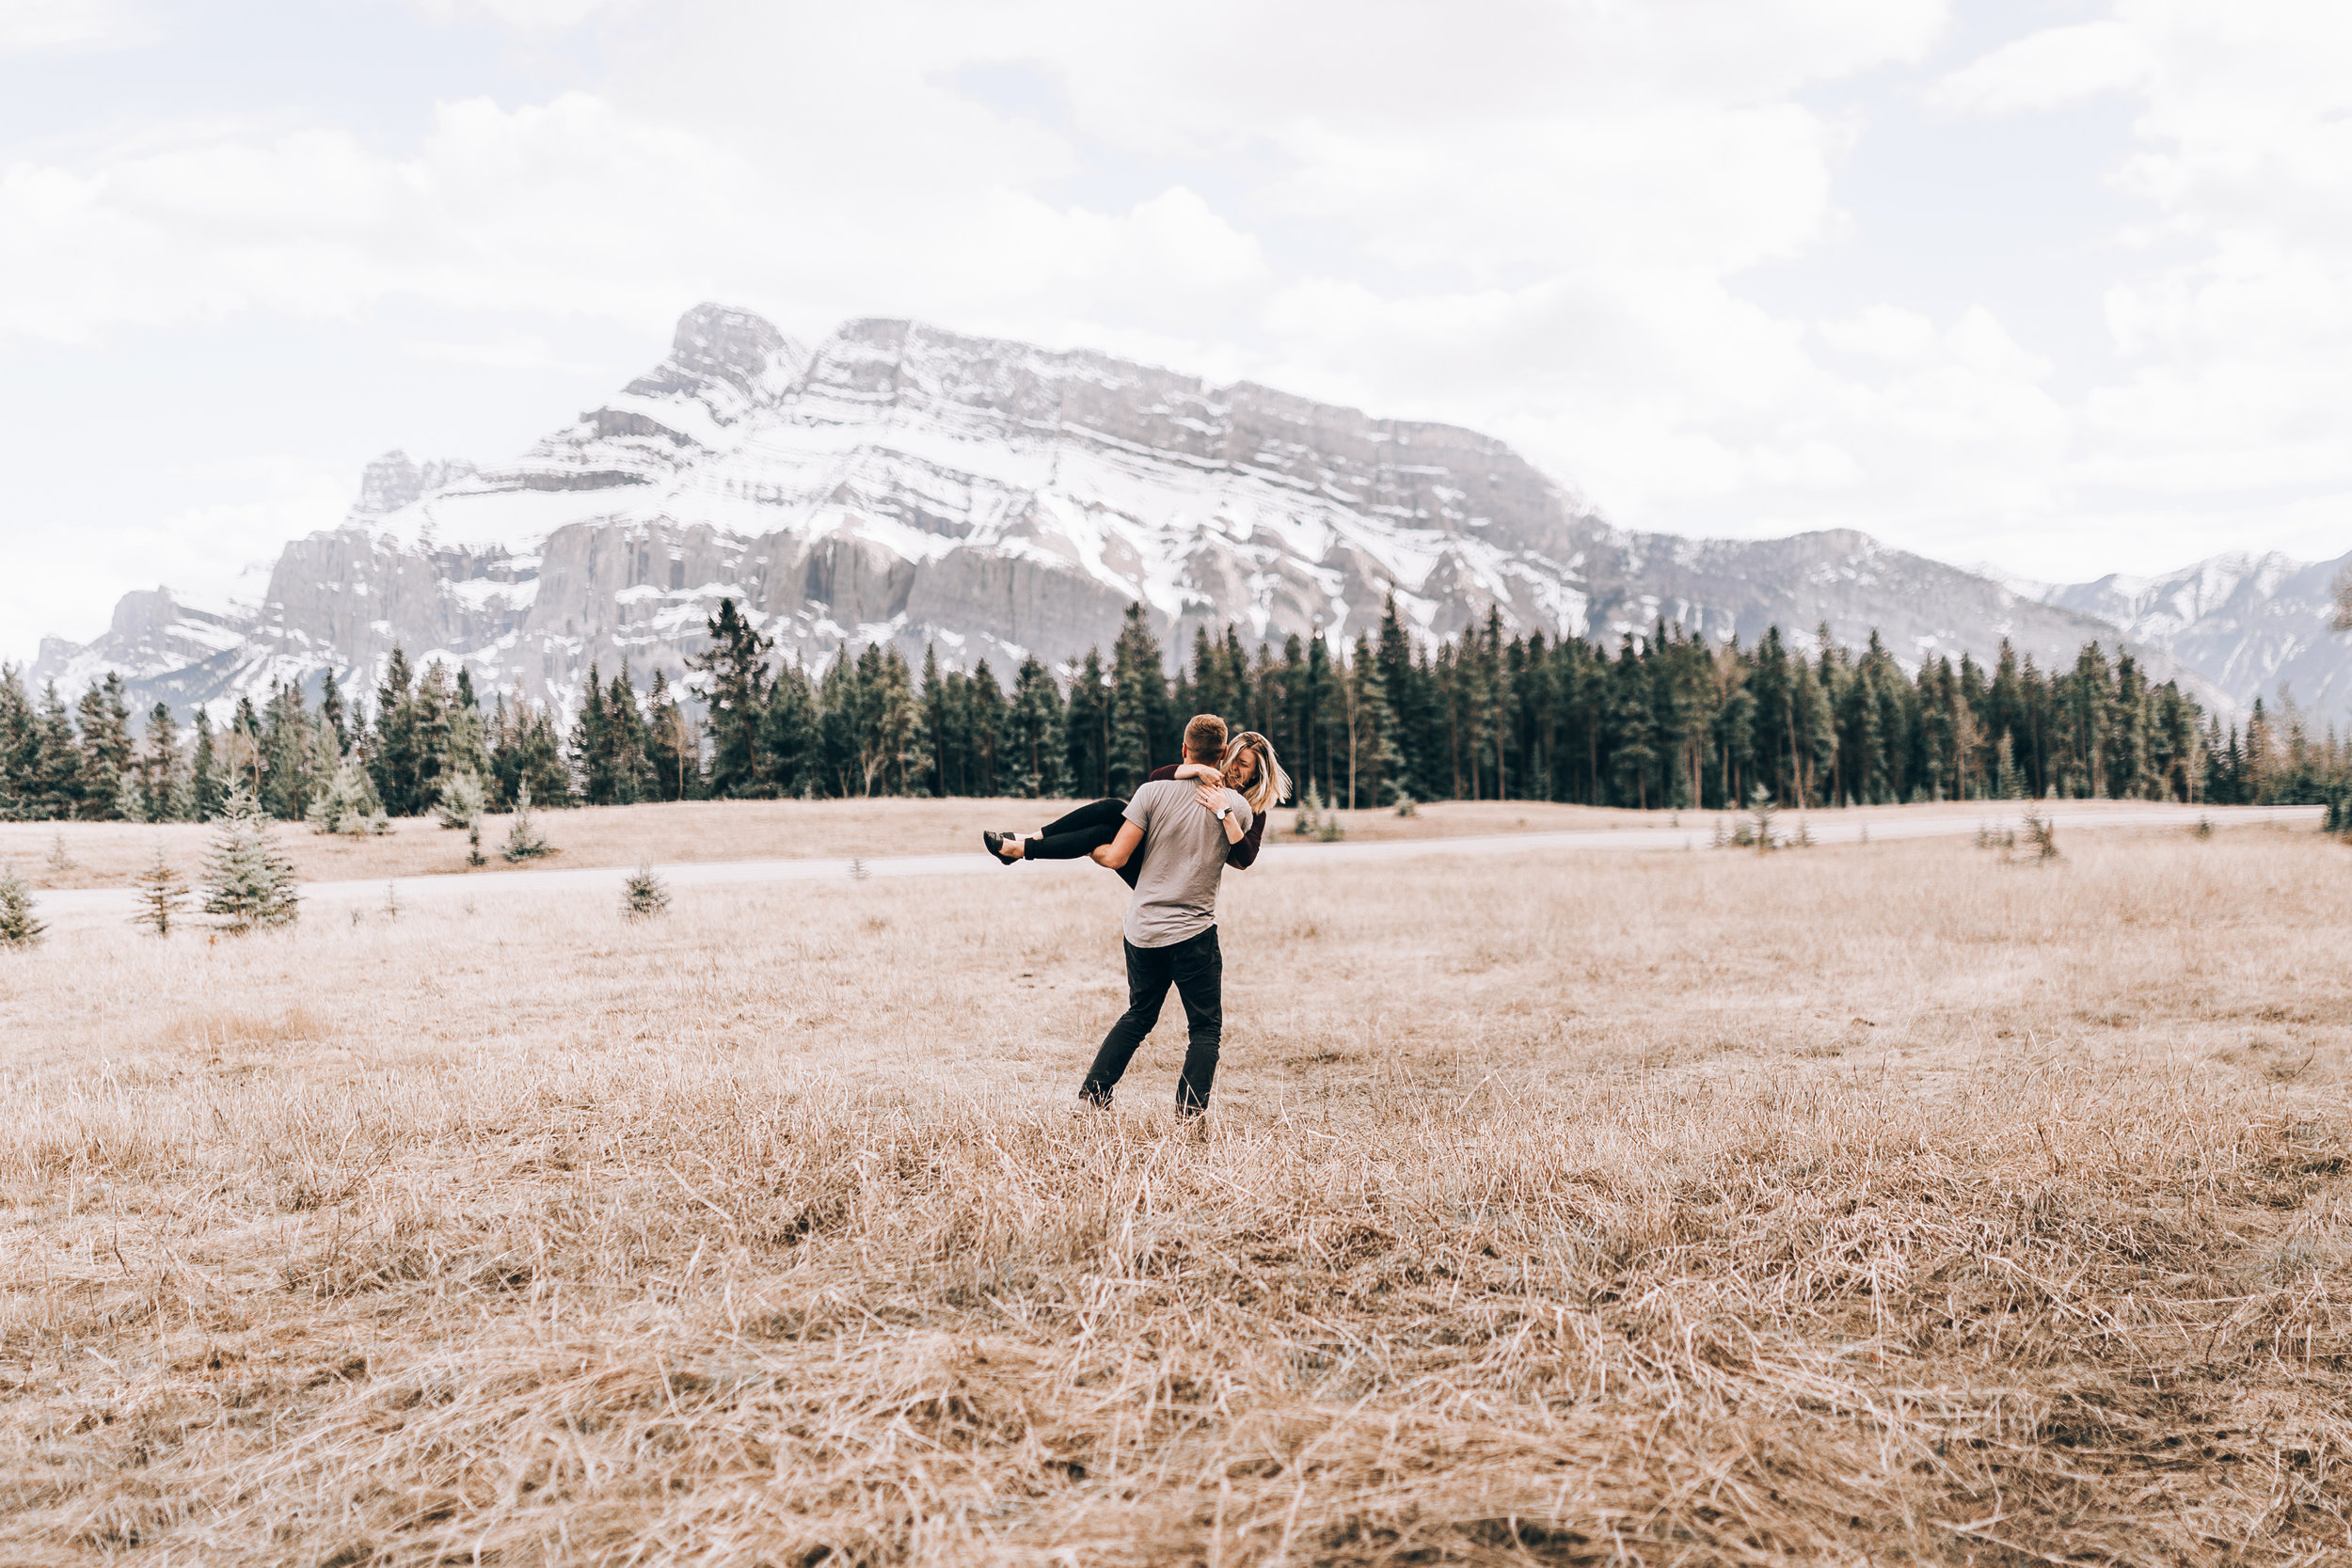 simpleperfectionsphotography.cullen+chelsey-59.jpg